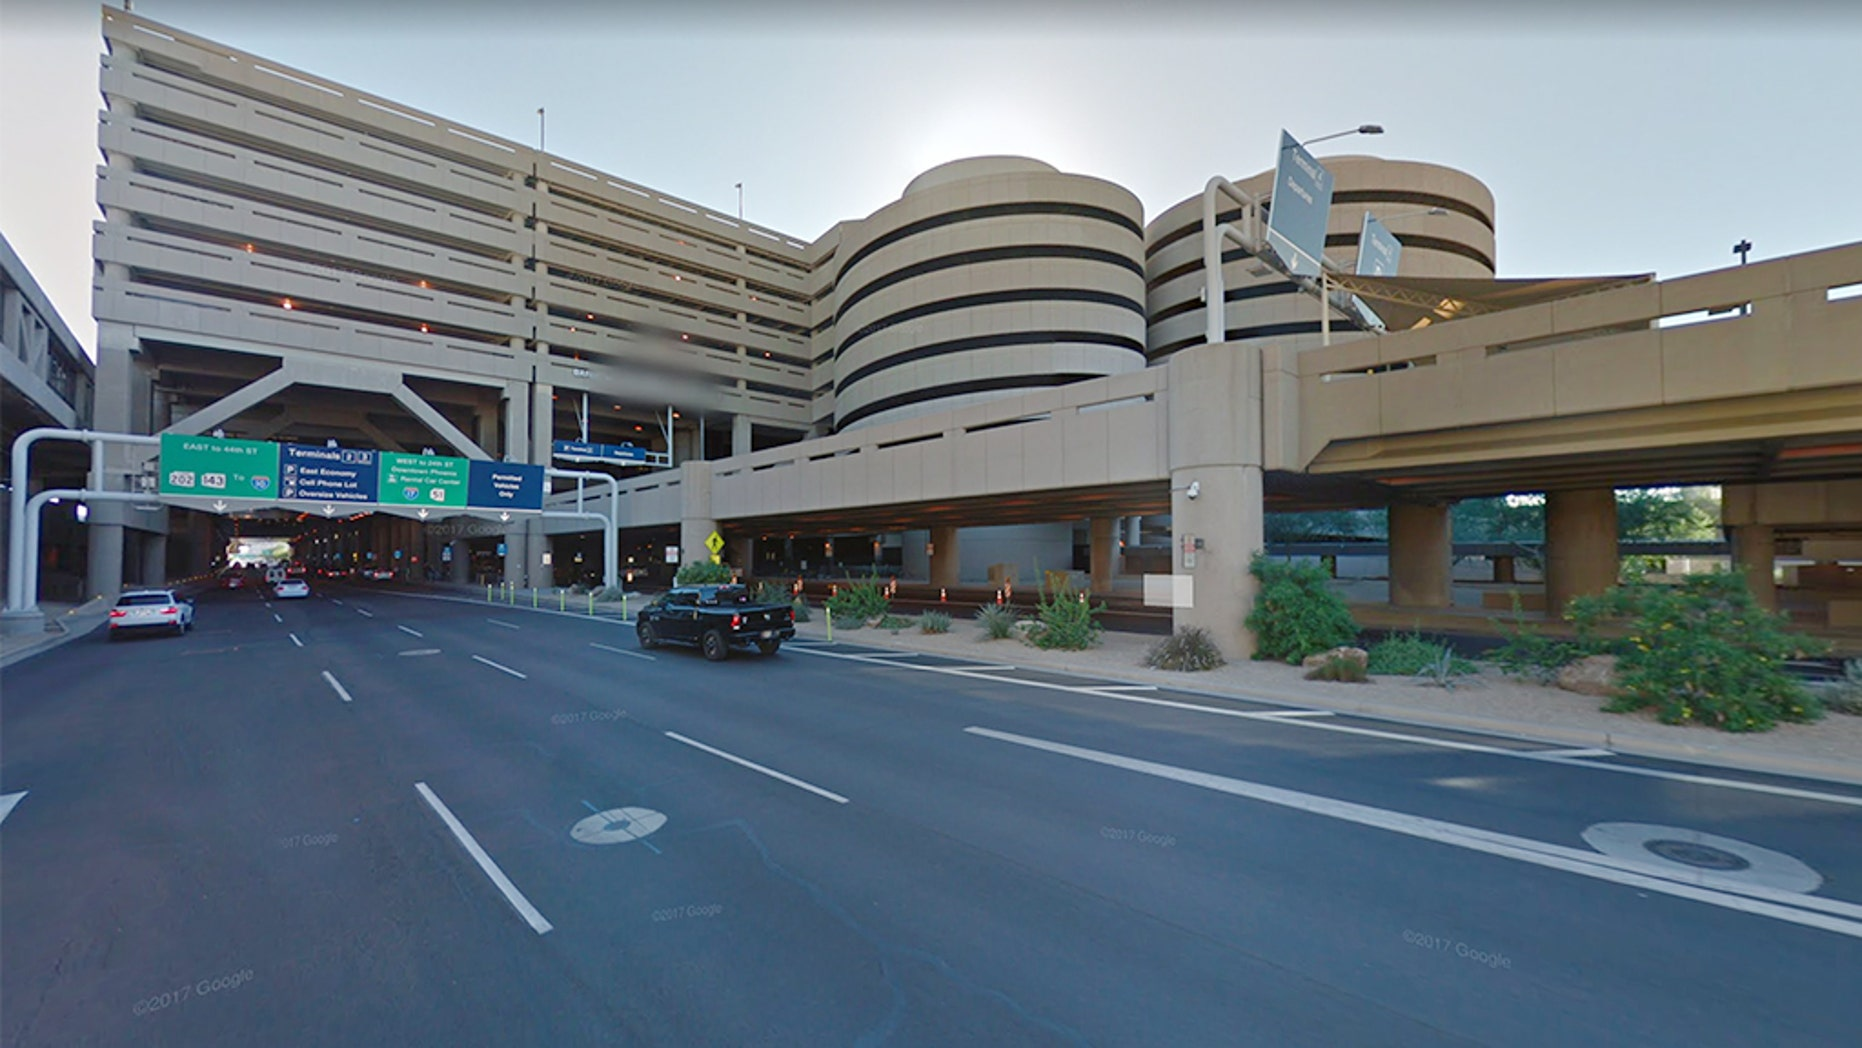 Phoenix Sky Harbor Airport officials are starting to restore normal operations after temporarily closing Terminal 4.